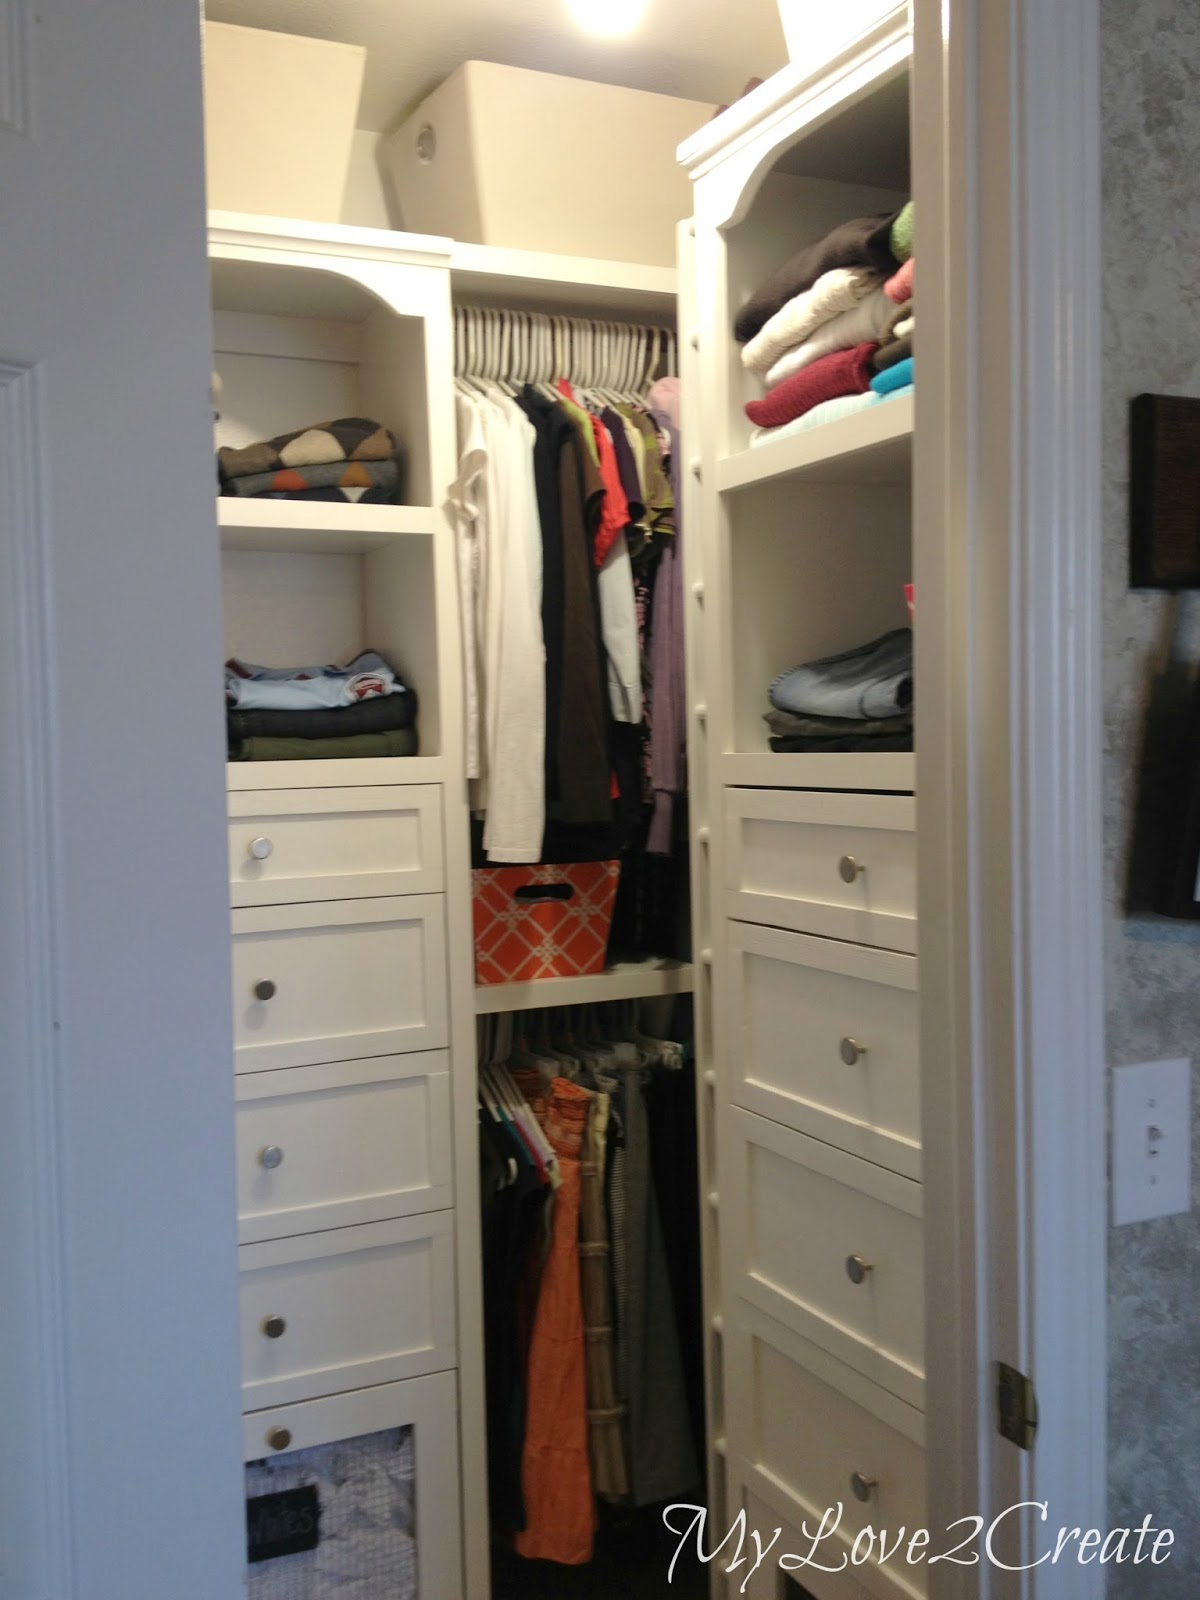 Diy Walk in Closet | Closet Shelving Ideas Diy | Walk in Closet Organizer